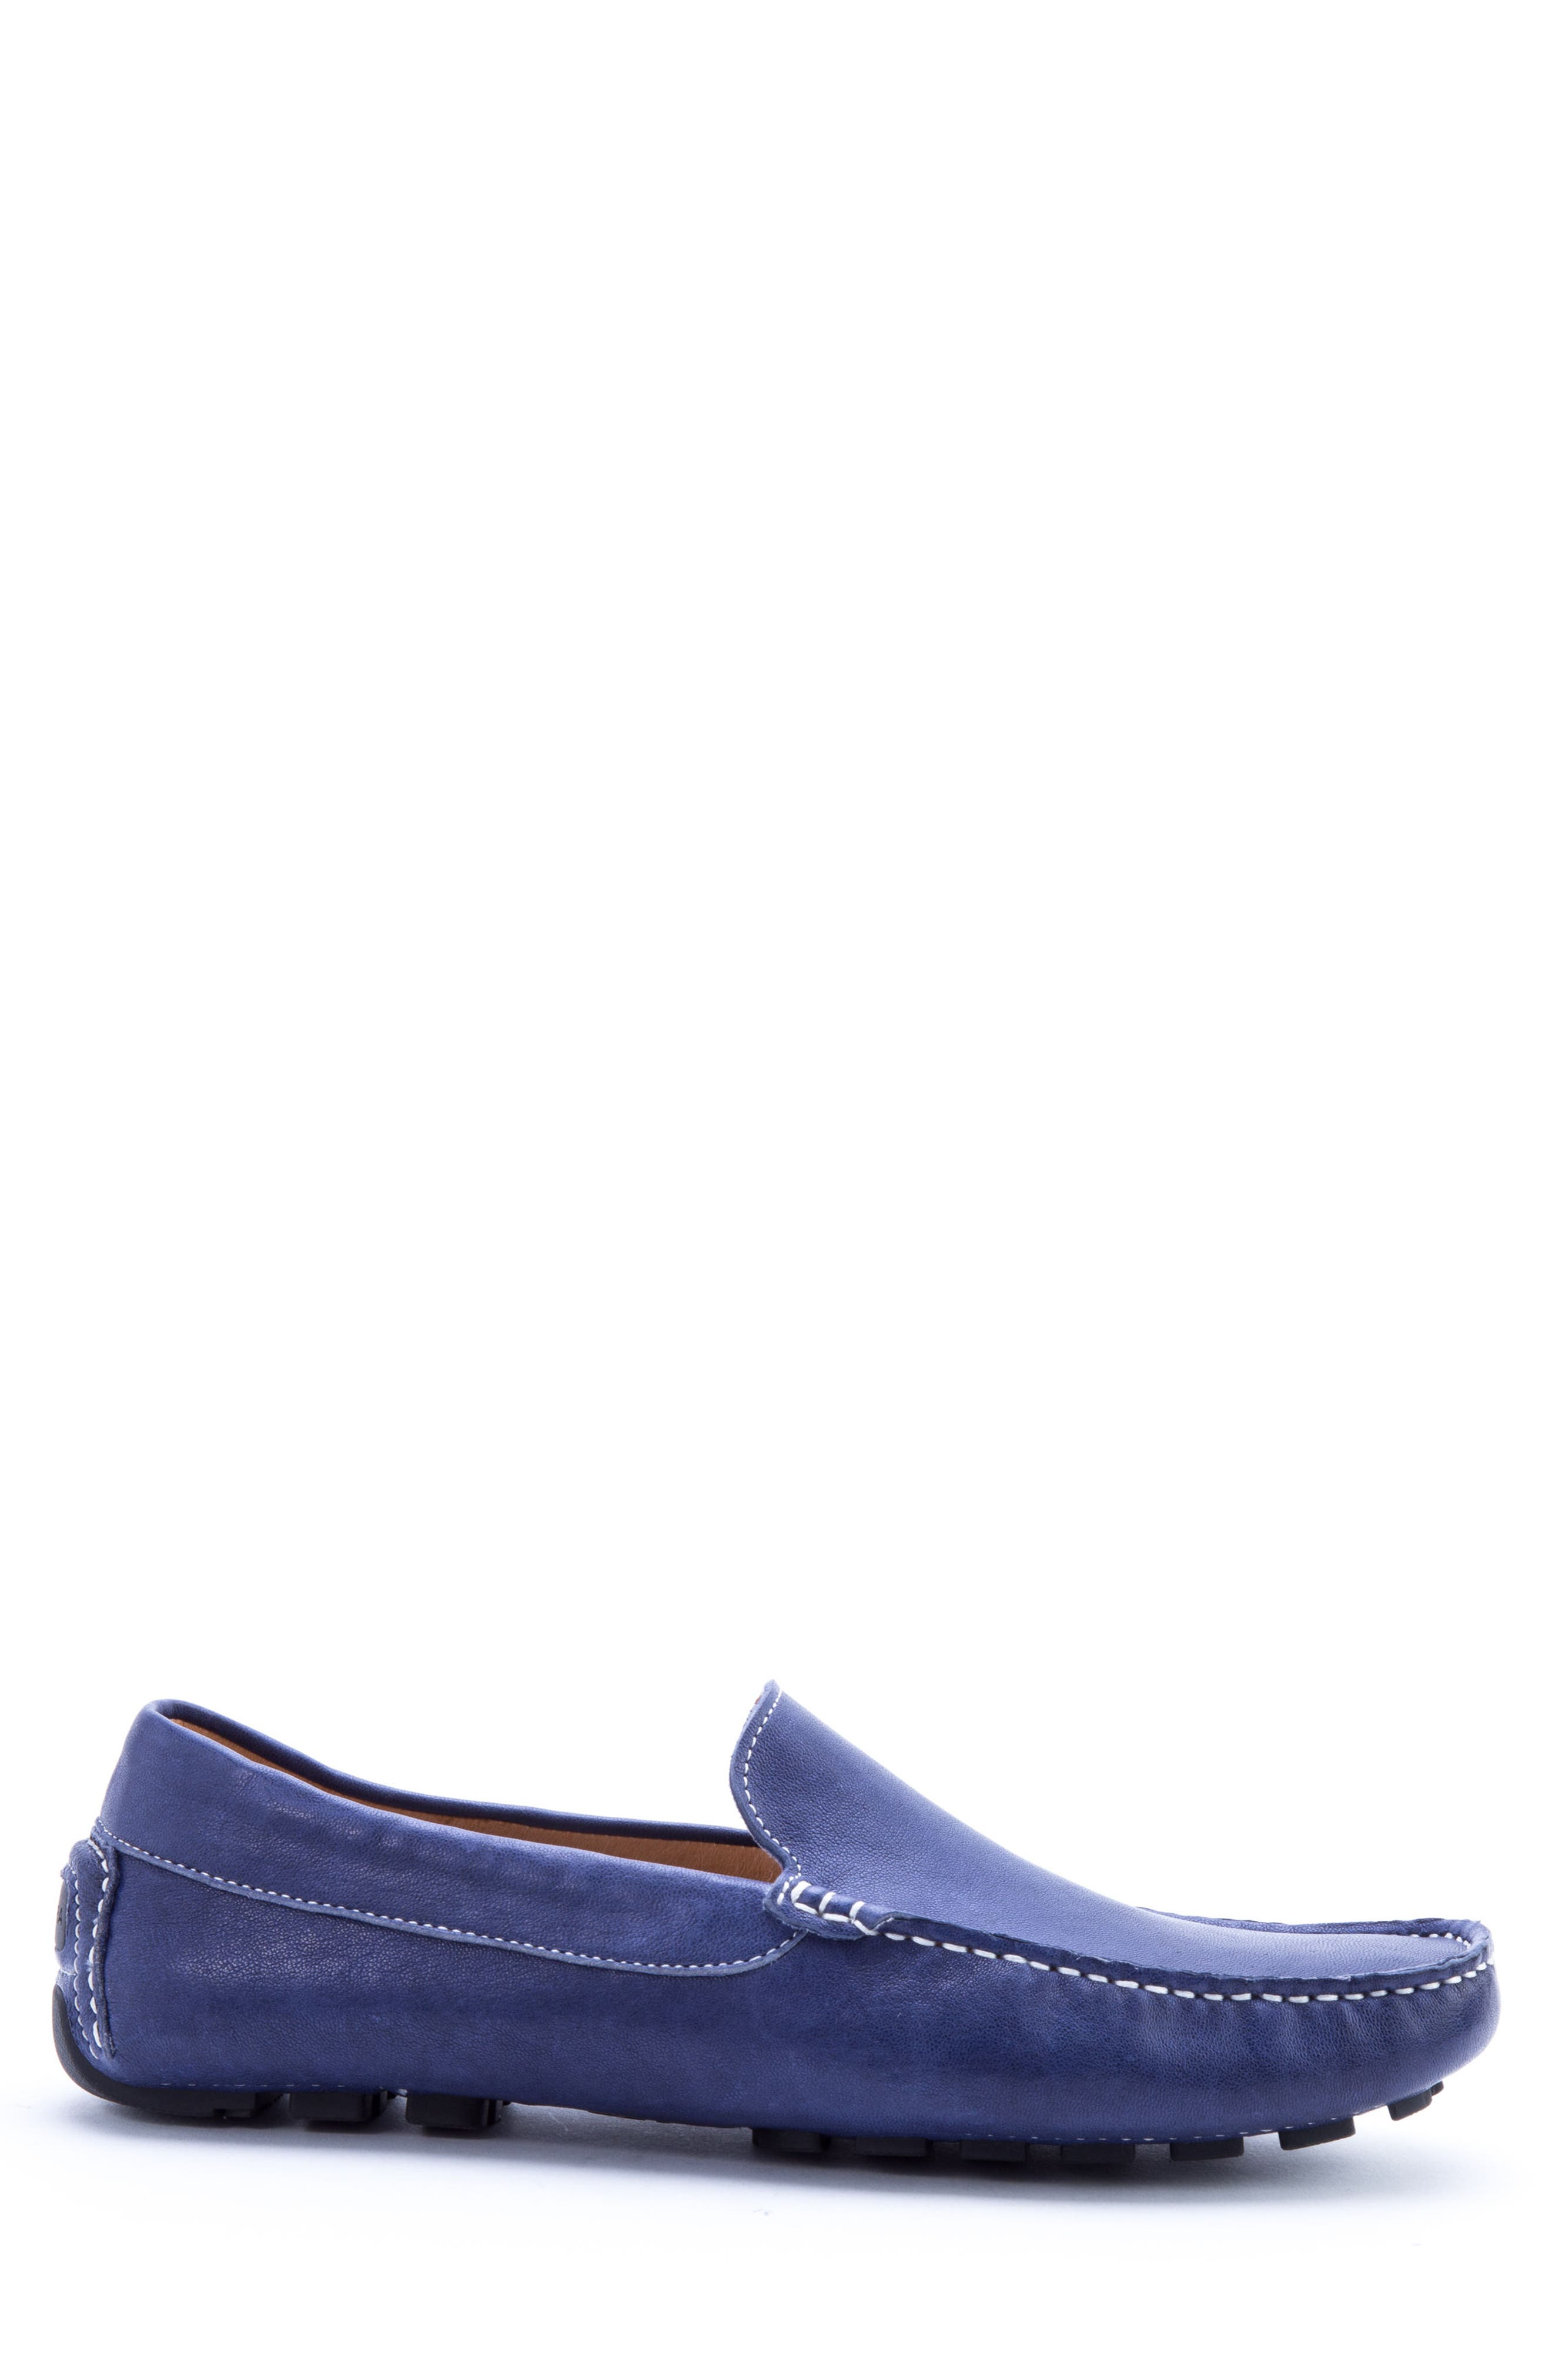 Picasso 3 Moc Toe Driving Loafer,                             Alternate thumbnail 3, color,                             Blue Leather